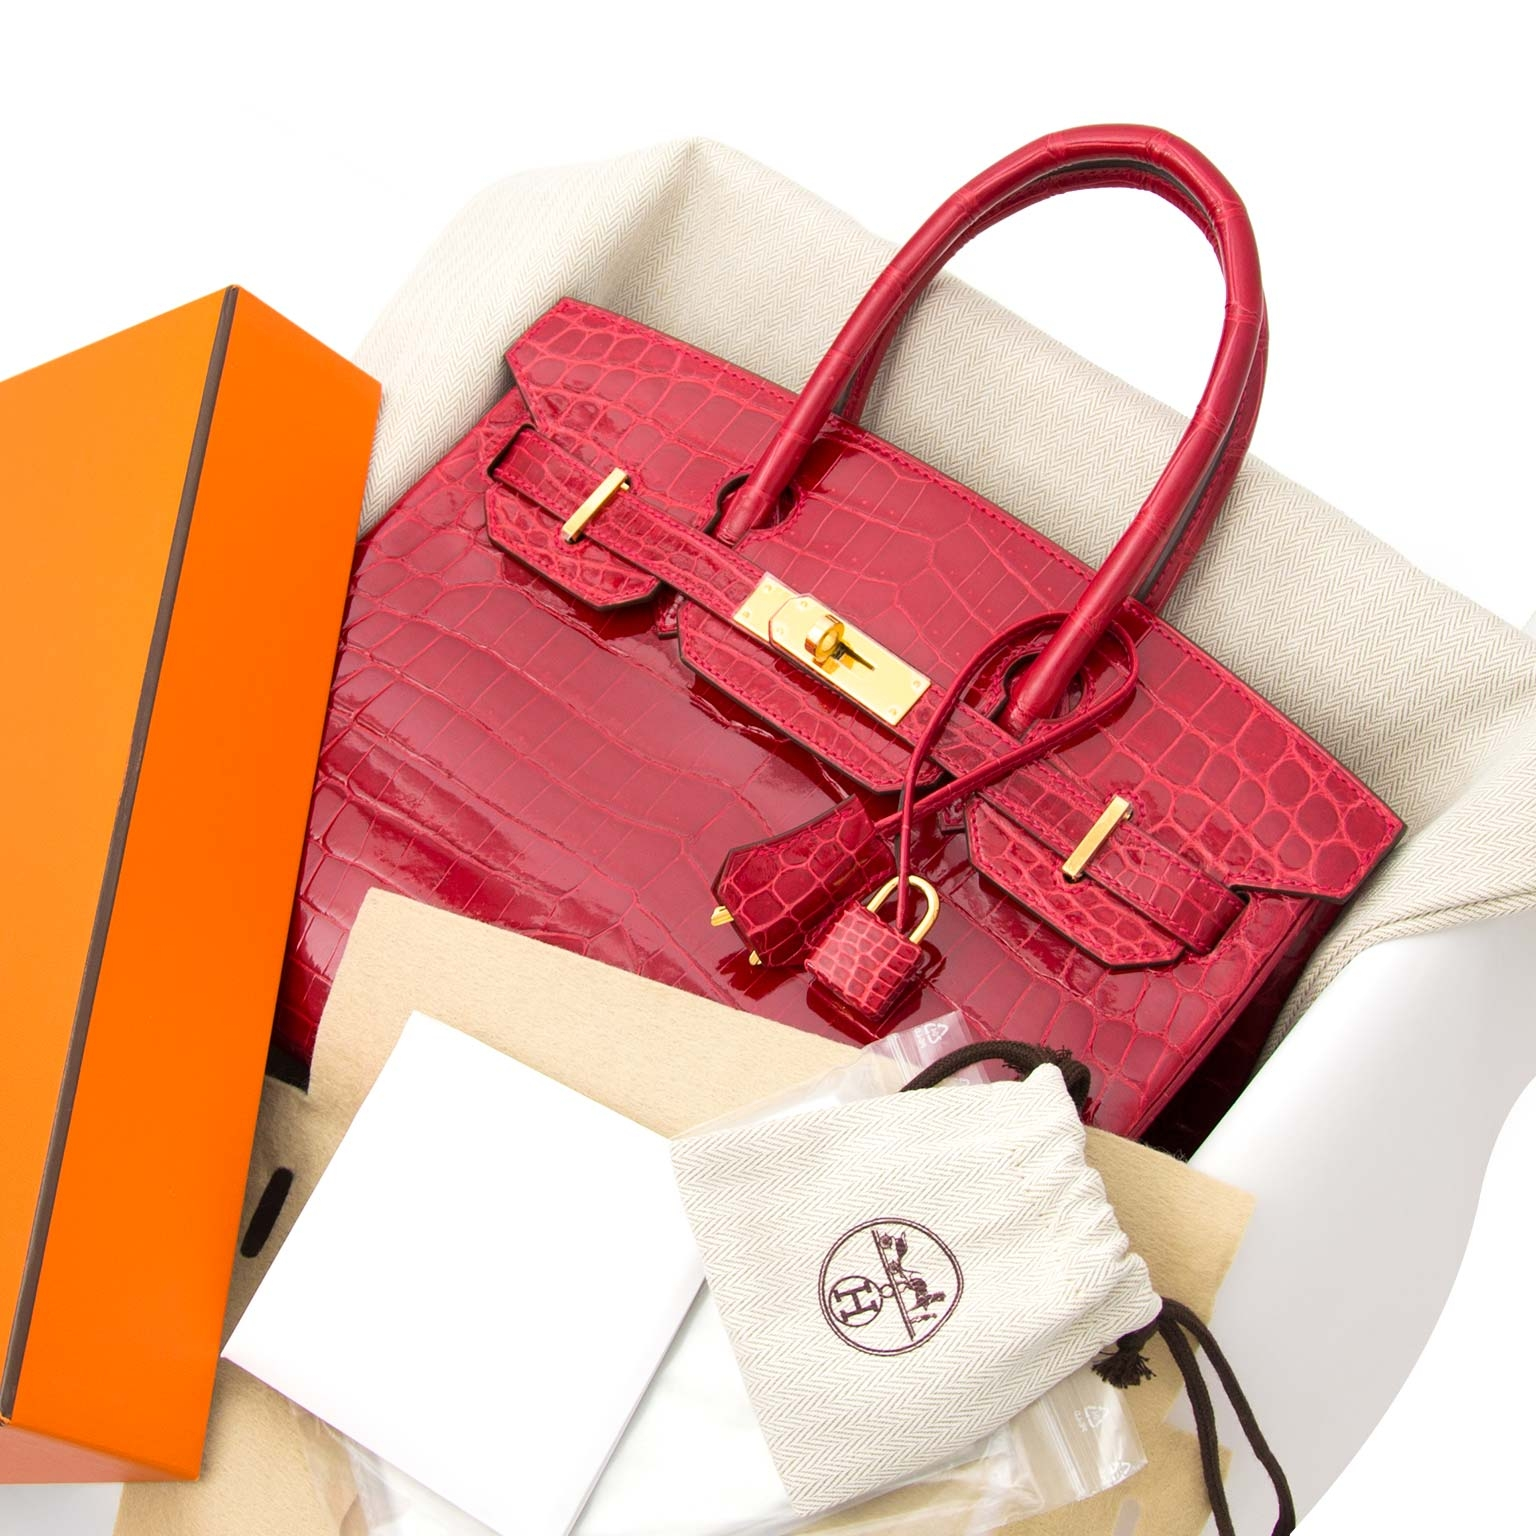 looking for a Hermès Birkin 30 Crocodile Niloticus Braise GHW Bag? skip the waitinglist and buy your birkin right now on labellov.com